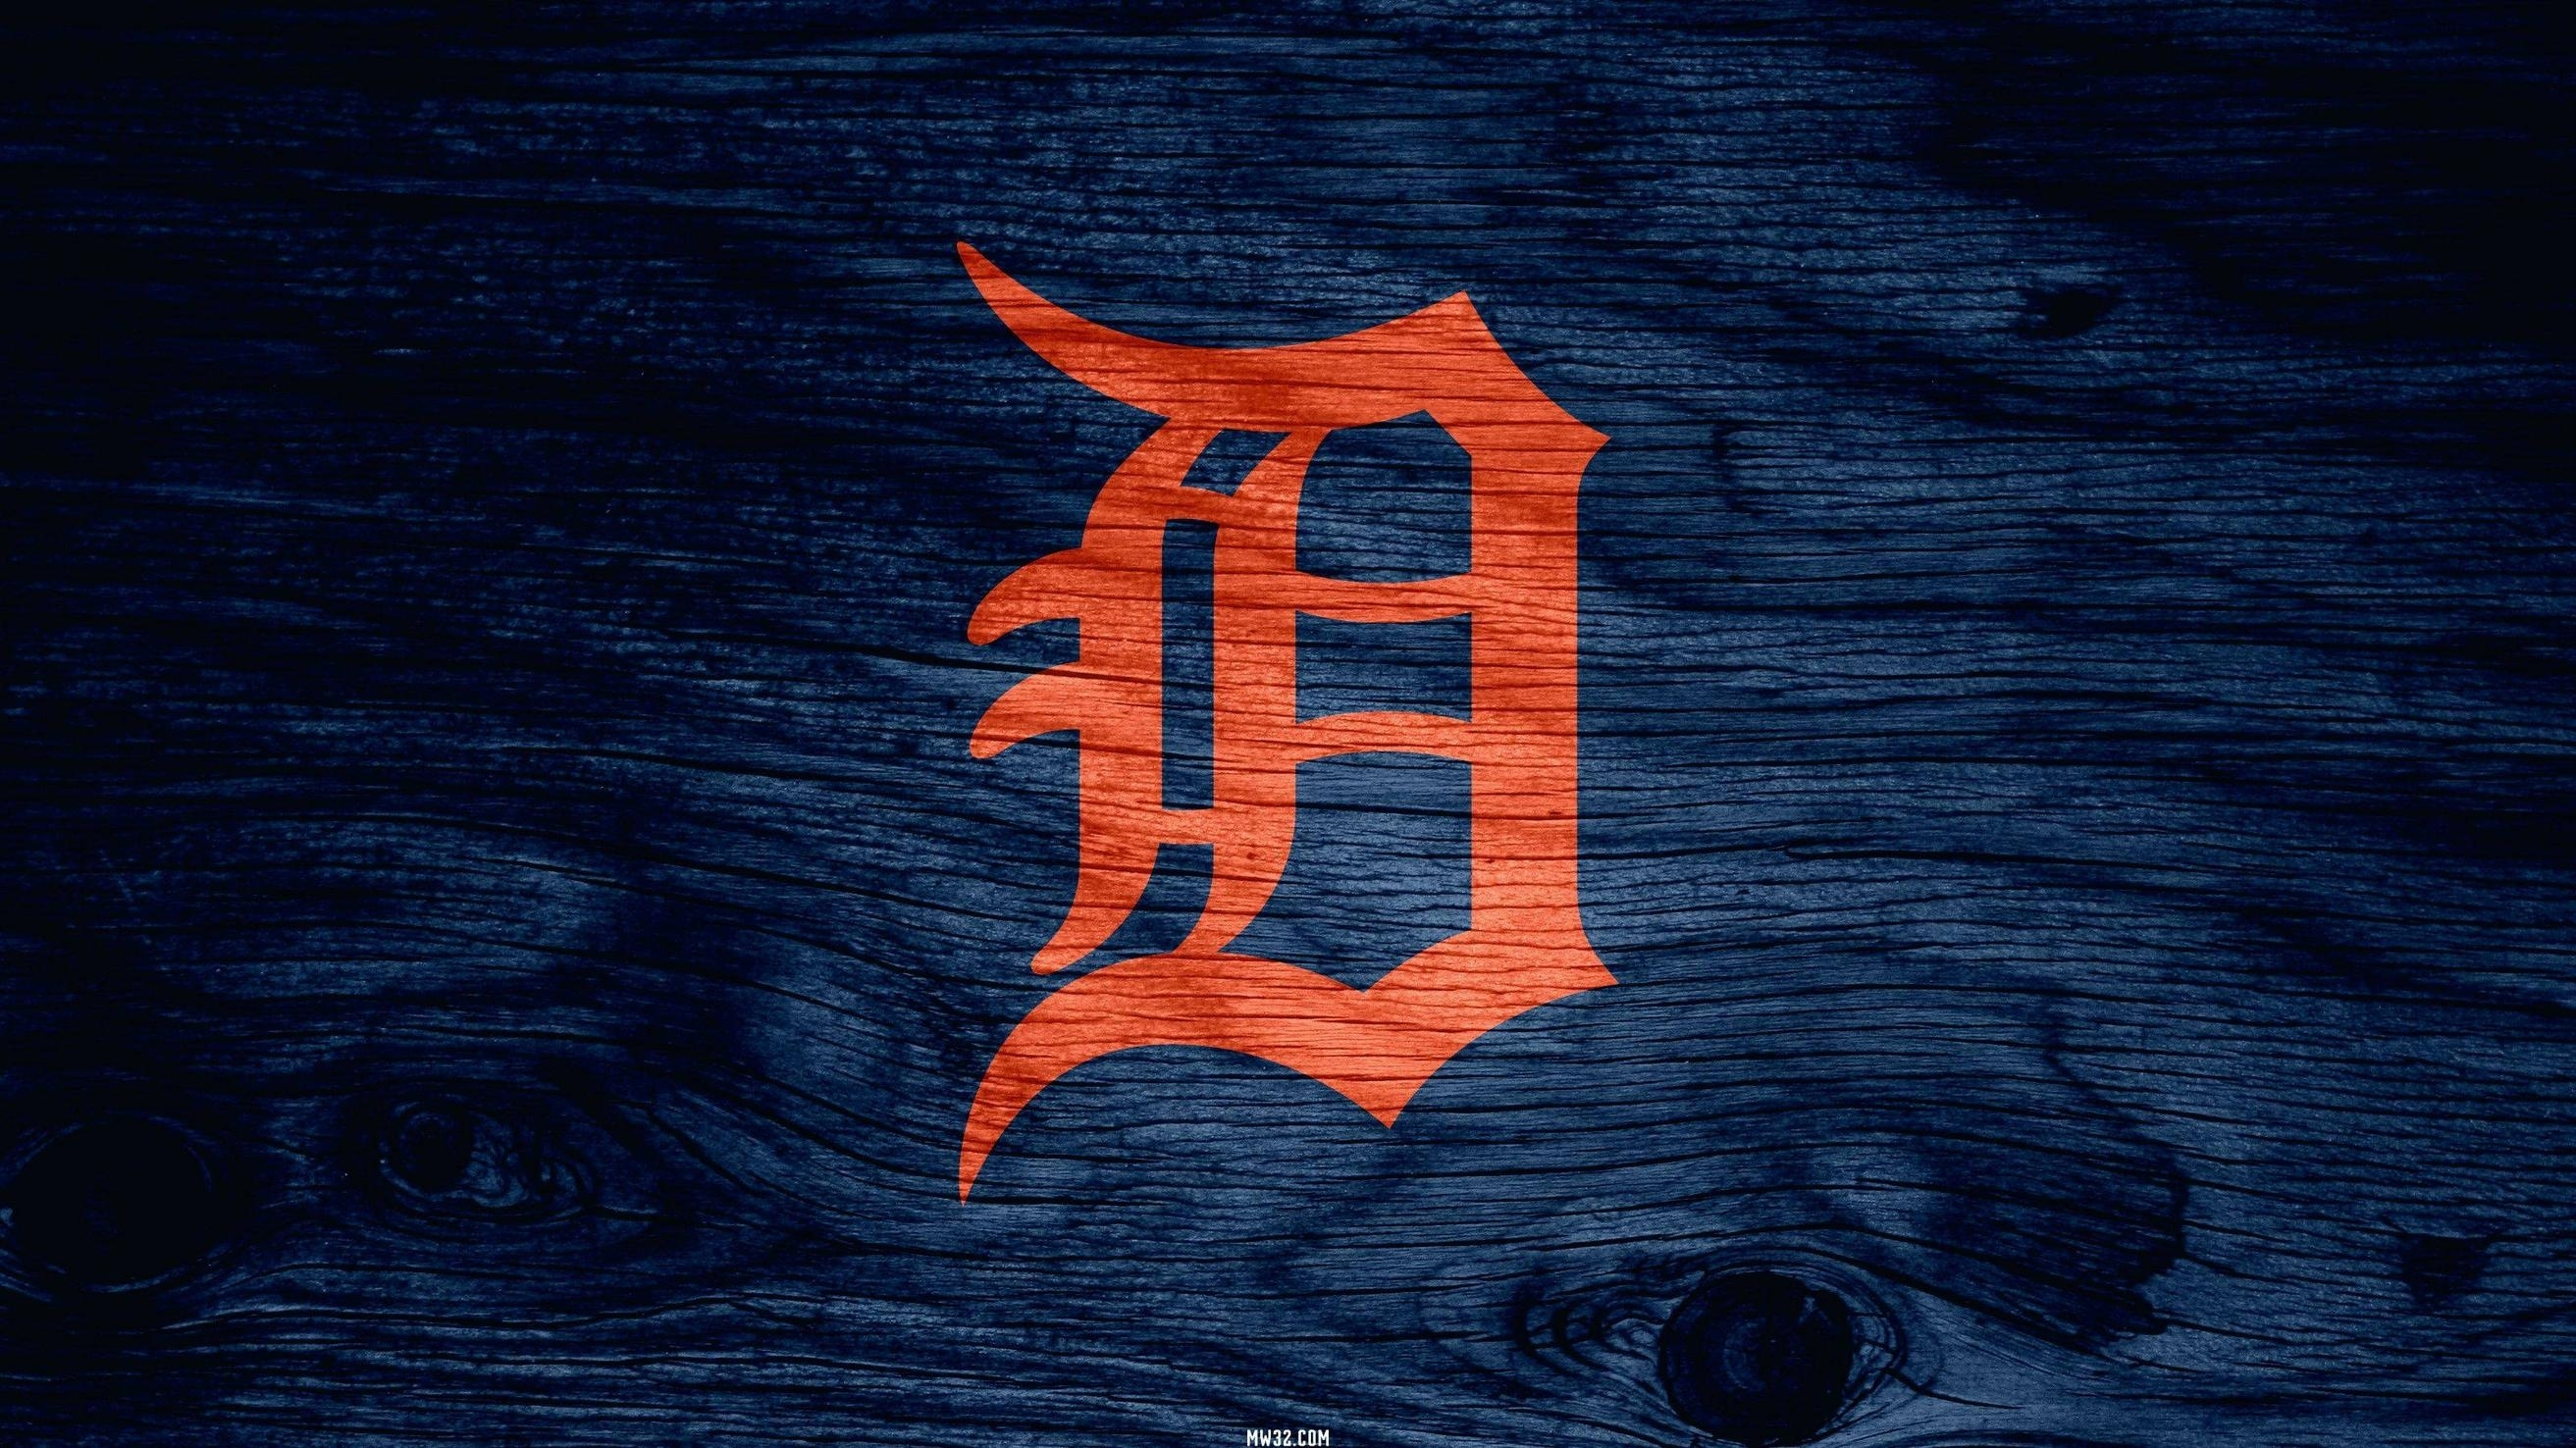 detroit tigers full hd wallpaper and background image | 2625x1476